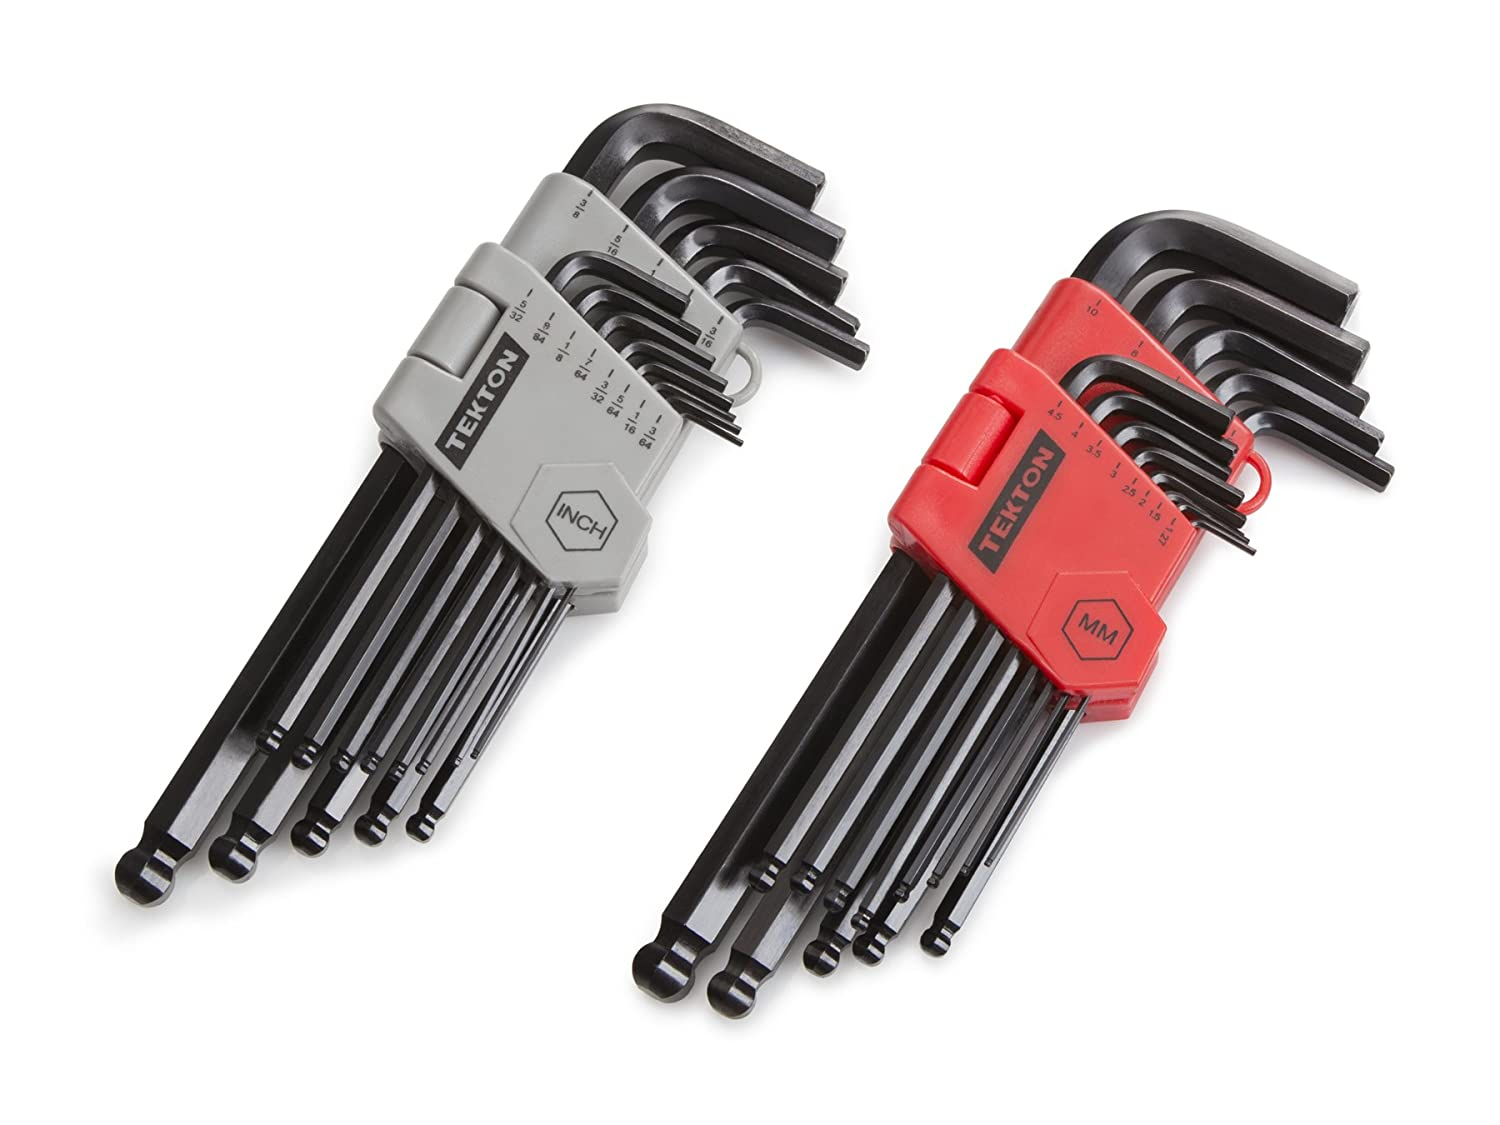 TEKTON Long Arm Ball End Hex Key Wrench Set, Inch/Metric, 26-Piece | 25282